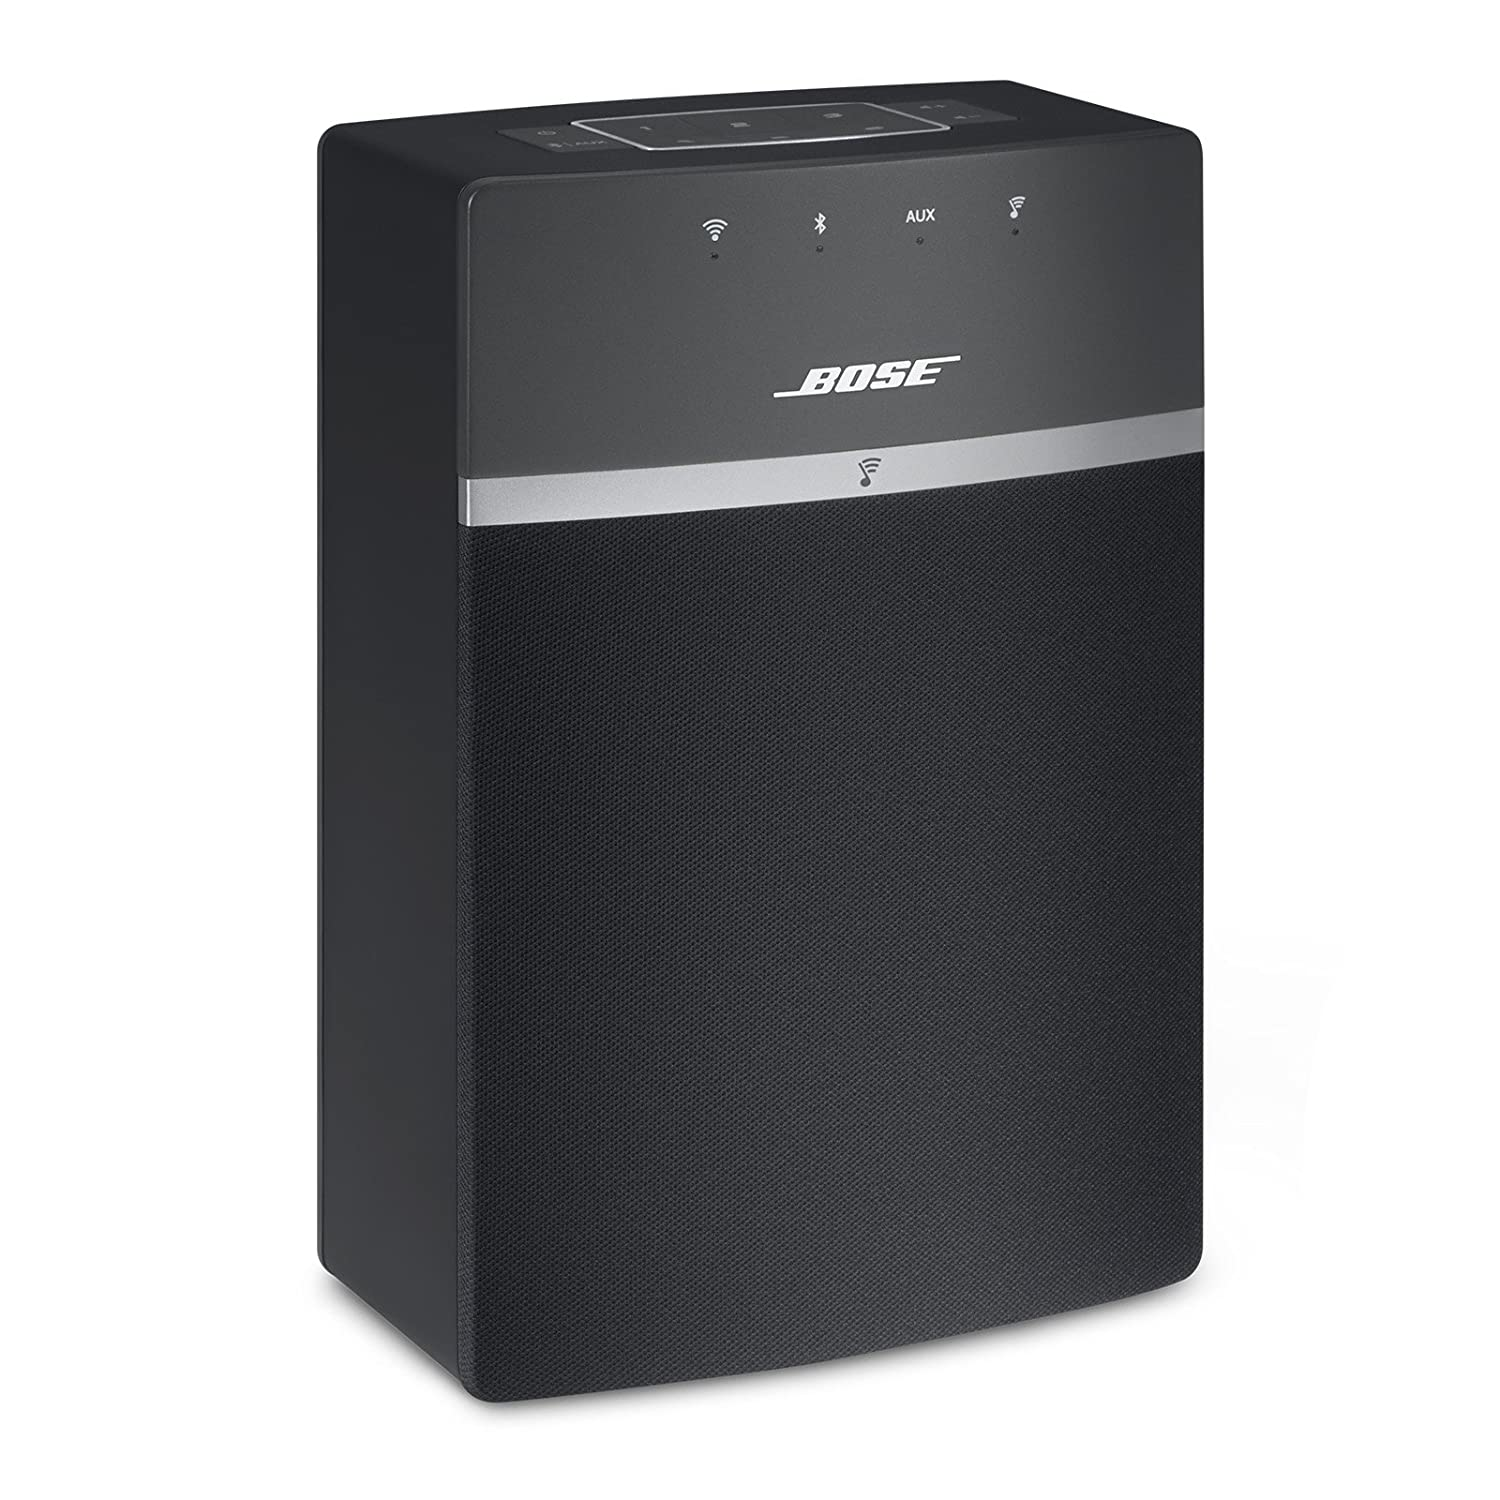 bose soundtouch 10 wireless music system black 17817692342 ebay. Black Bedroom Furniture Sets. Home Design Ideas